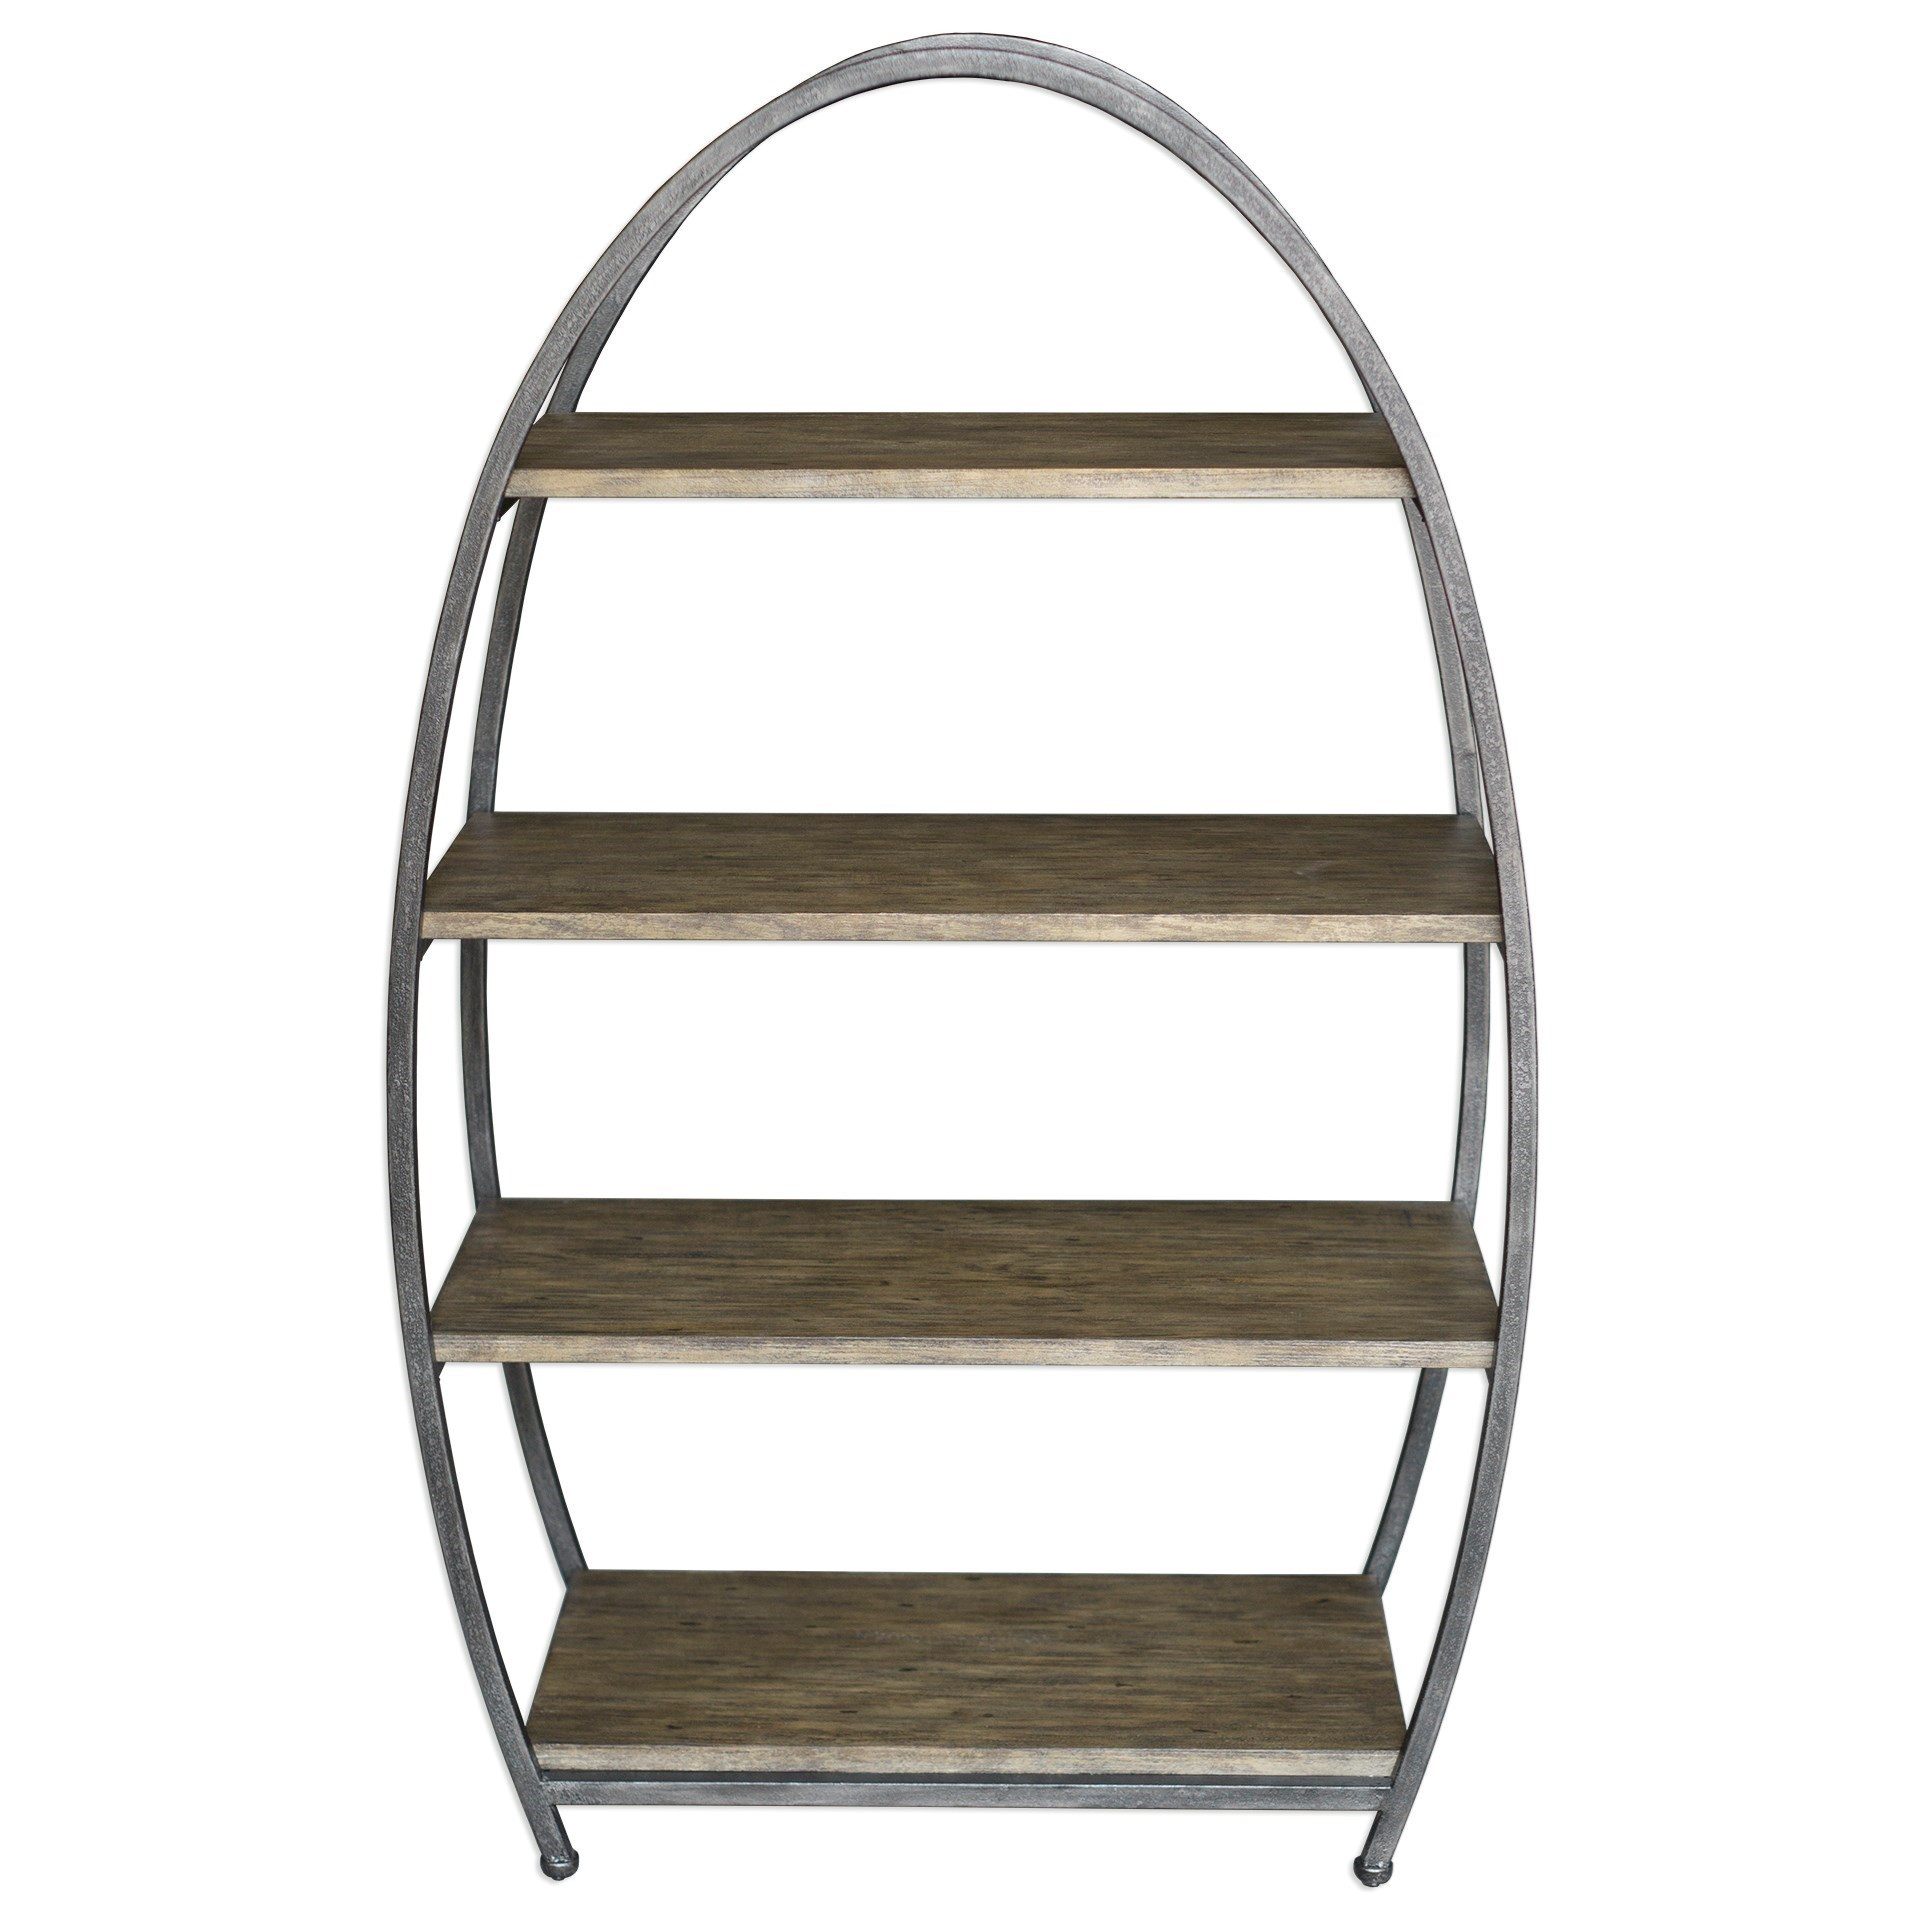 Accent Furniture - Bookcases  Matisa Textured Steel Etagere by Uttermost at Factory Direct Furniture